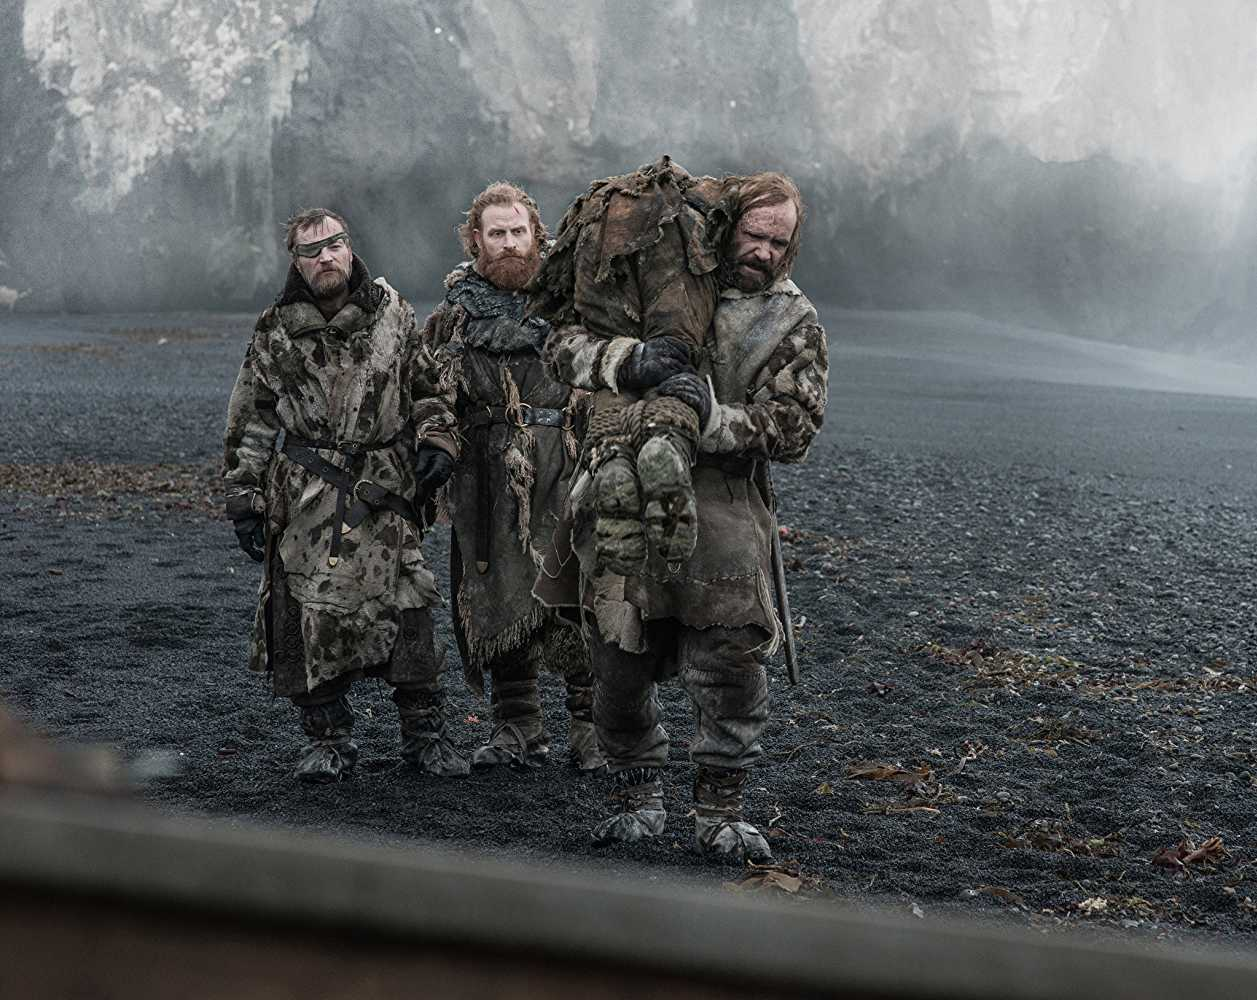 Clegane is now a part of a group which consists of bastards, imps, and everything that is broken. (IMDb)